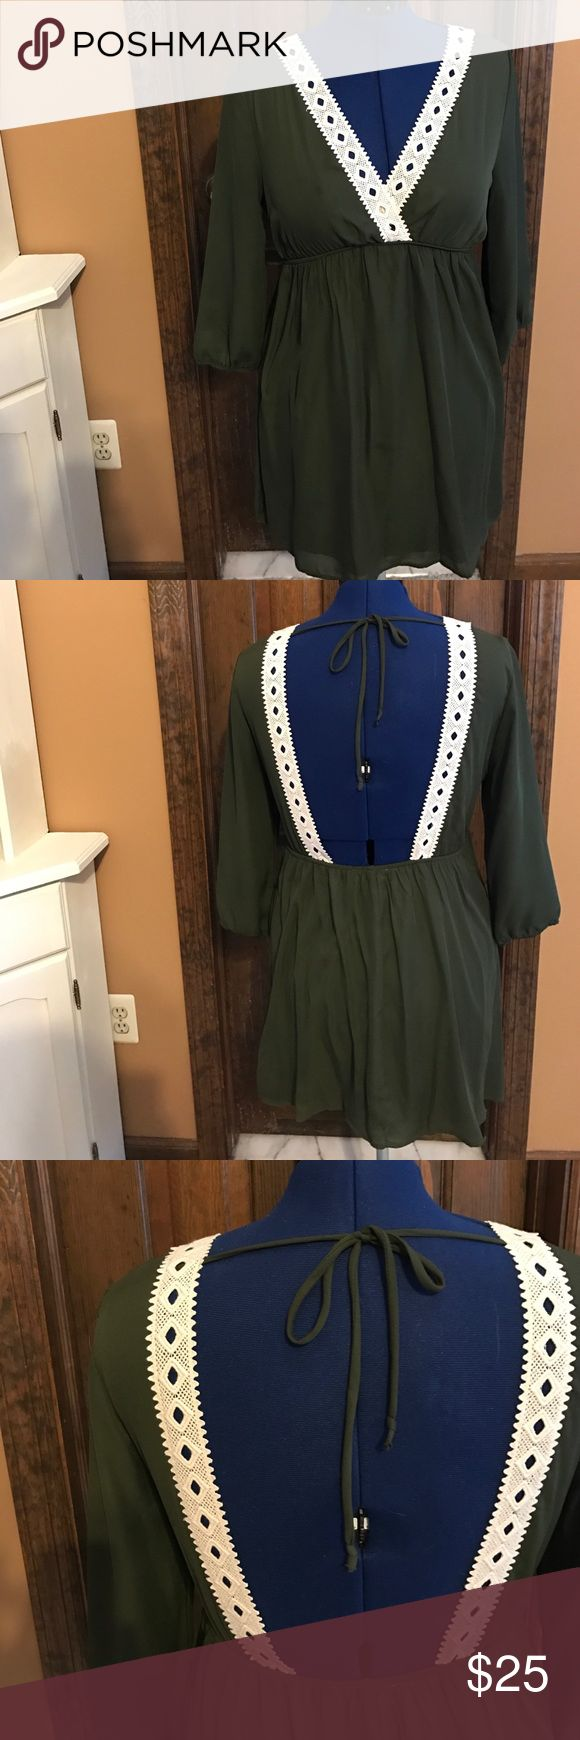 NWOT Olive and cream mini dress lace detail Olive mini dress with open back, v neck front, tie in back and empire waist. So adorable for summer with tan sandals or with a leather jacket, tights and boots in the fall! Boutique Dresses Mini